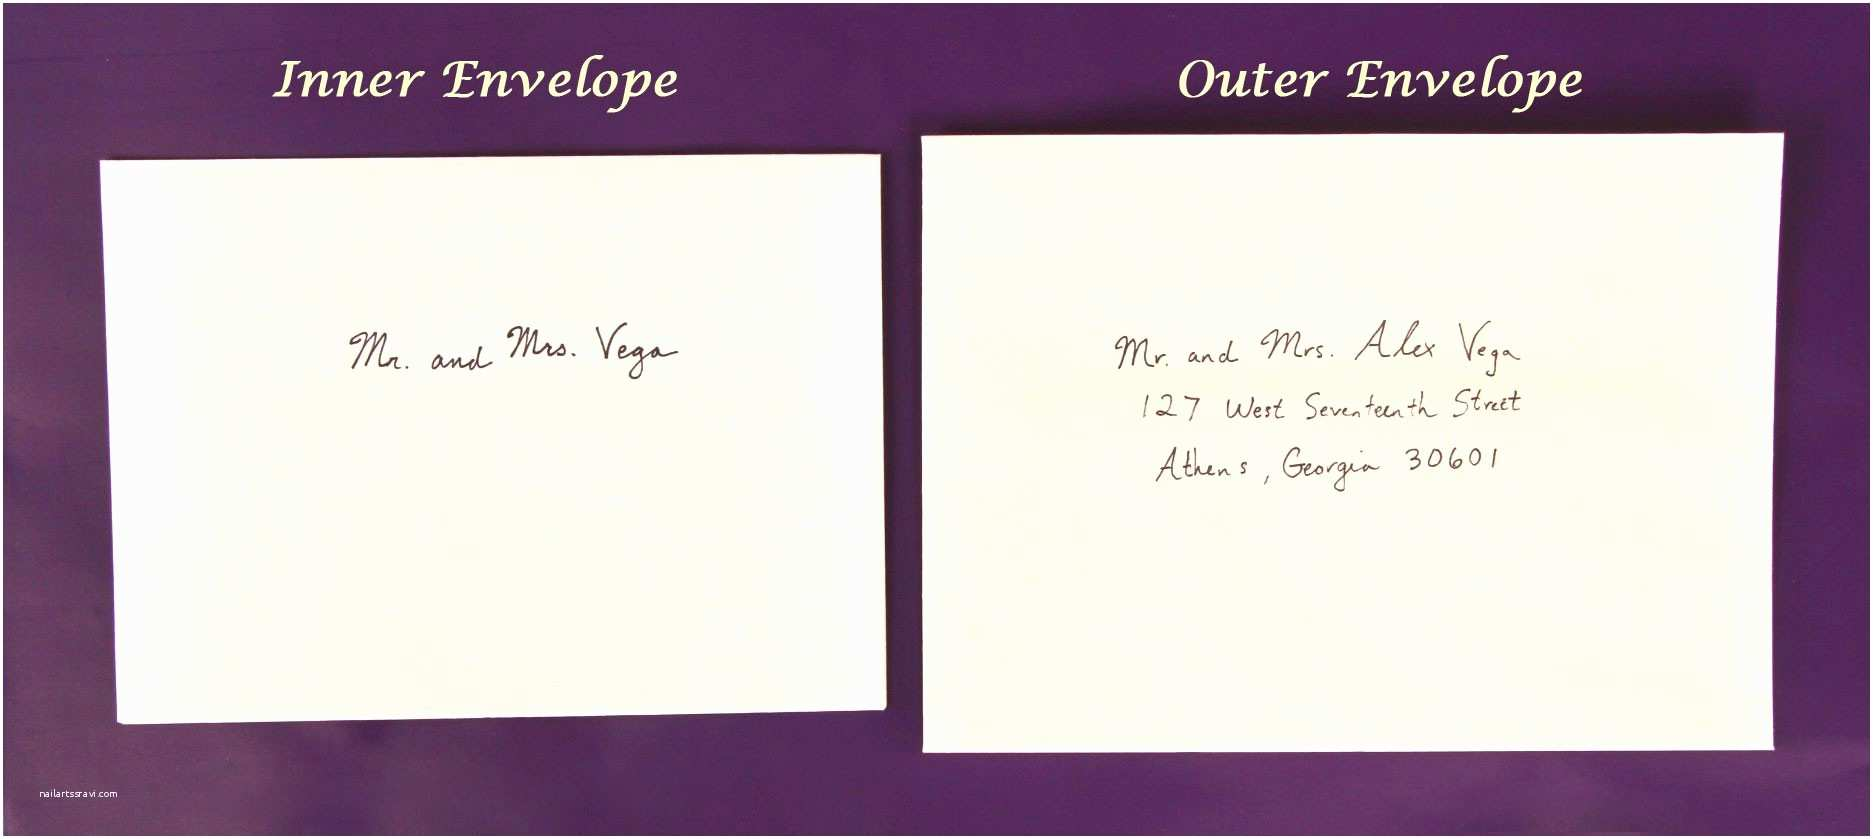 Outer Envelopes for Wedding Invitations How to Address Wedding Invitations